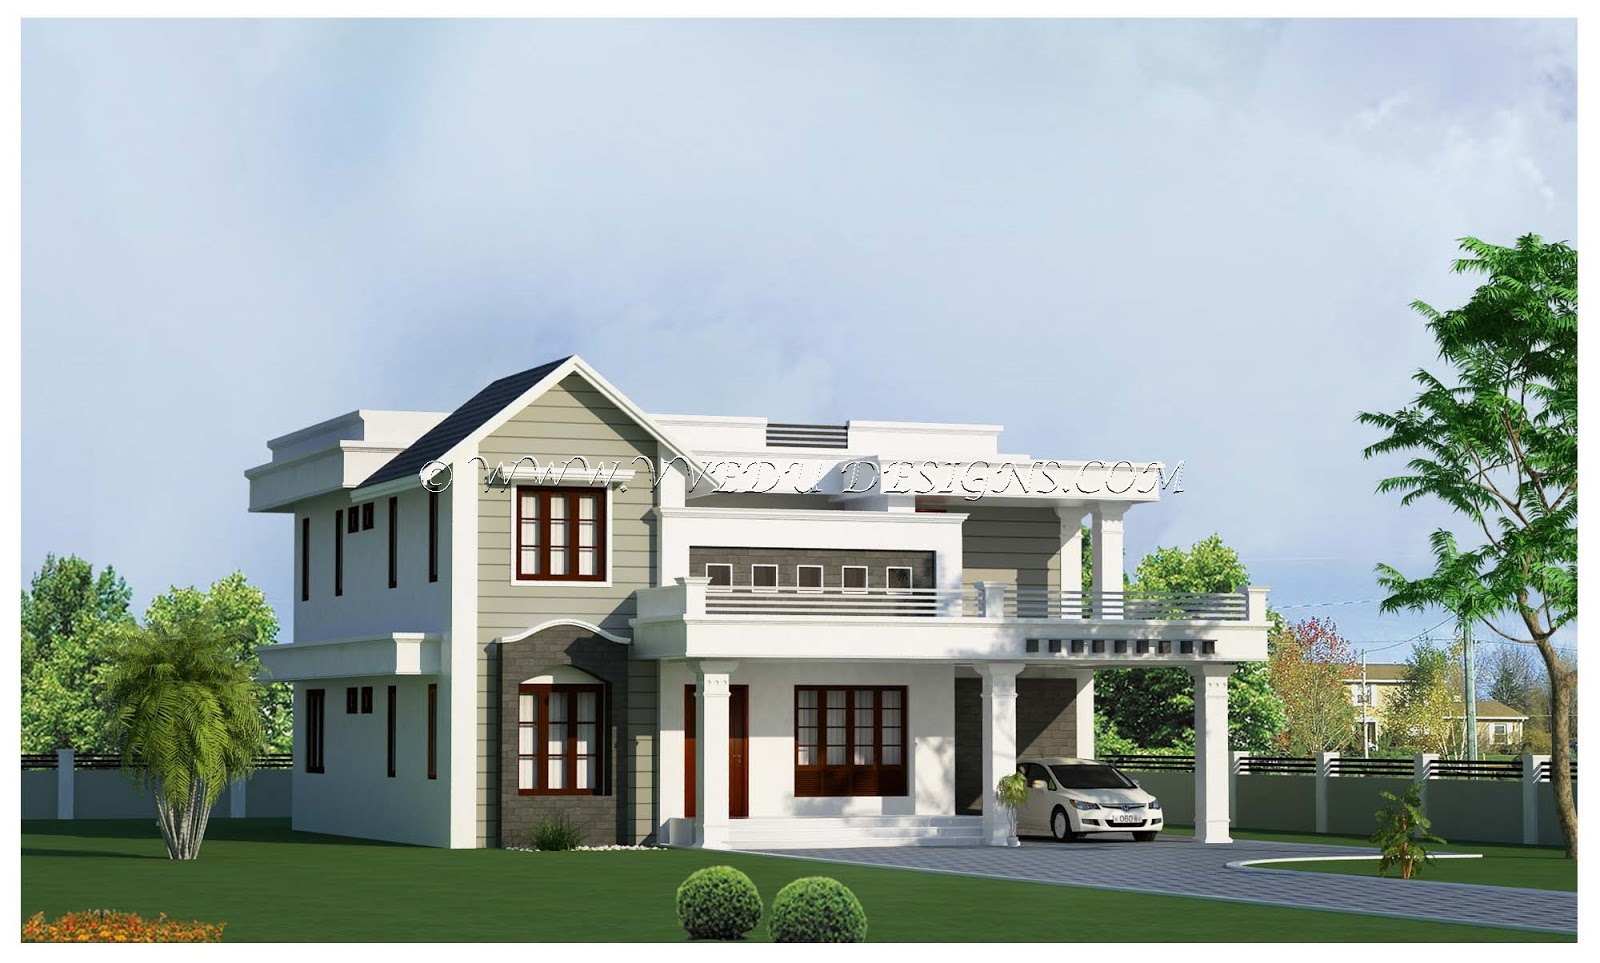 The gallery for low cost kerala veedu plans for Low cost kerala veedu plans